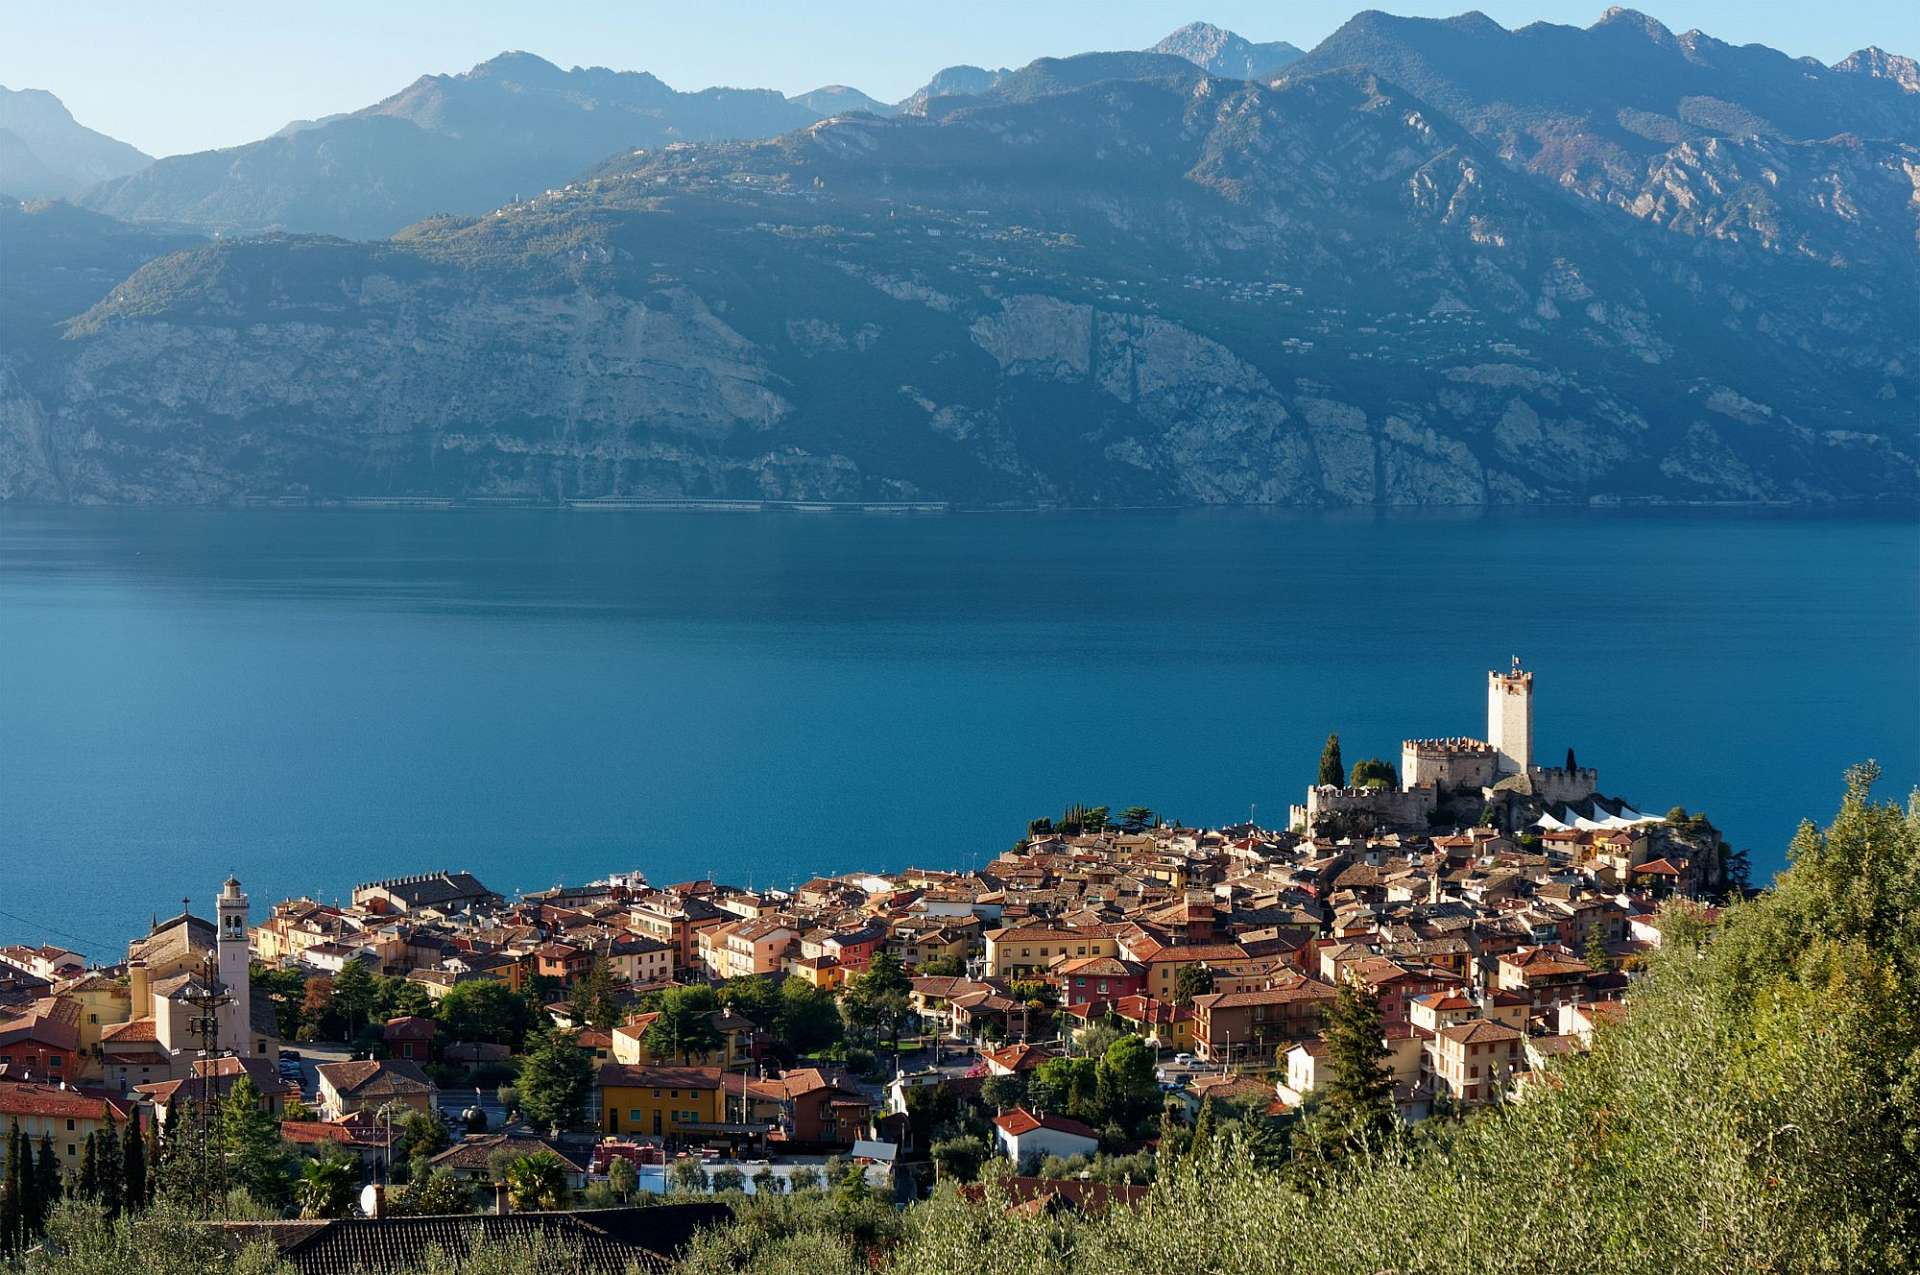 Malcesine overlooking Lake Garda